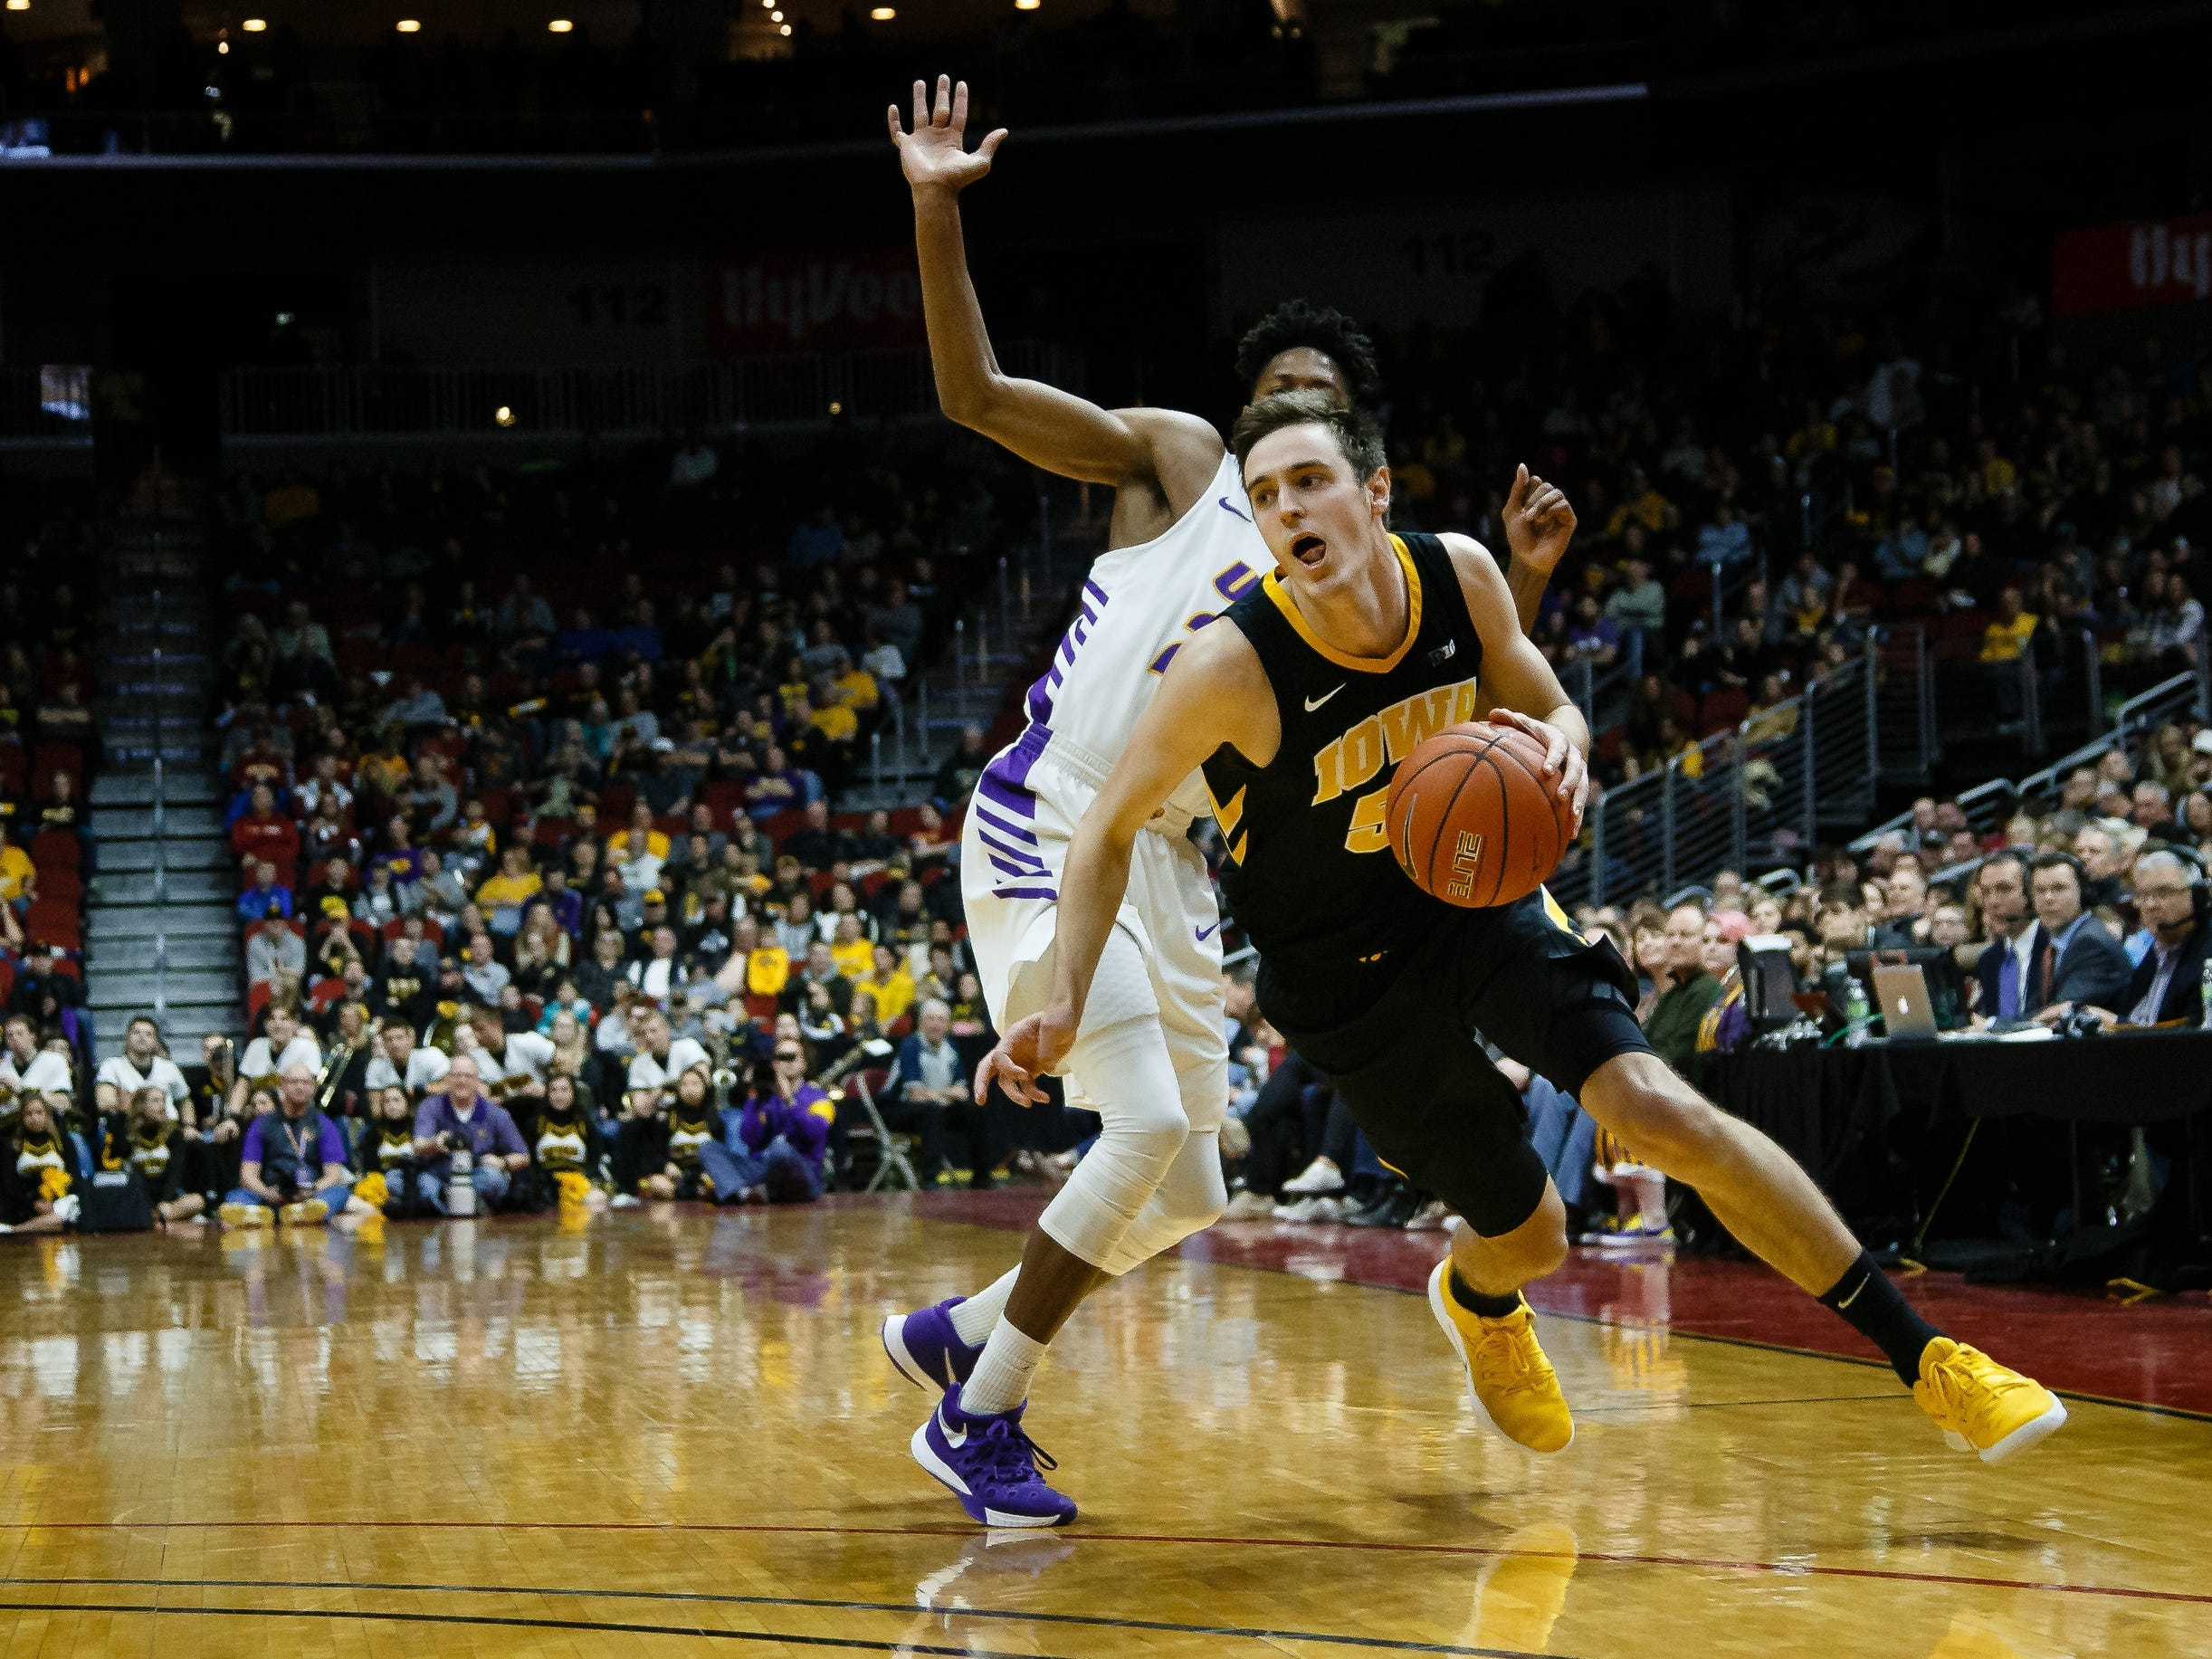 Iowa's Nicholas Baer (51) dribbles around UNI's IsaiahÊBrown (24) during their basketball game at the Hy-Vee Classic on Saturday, Dec. 15, 2018, in Des Moines. Iowa takes a 39-18 lead over UNI into halftime.